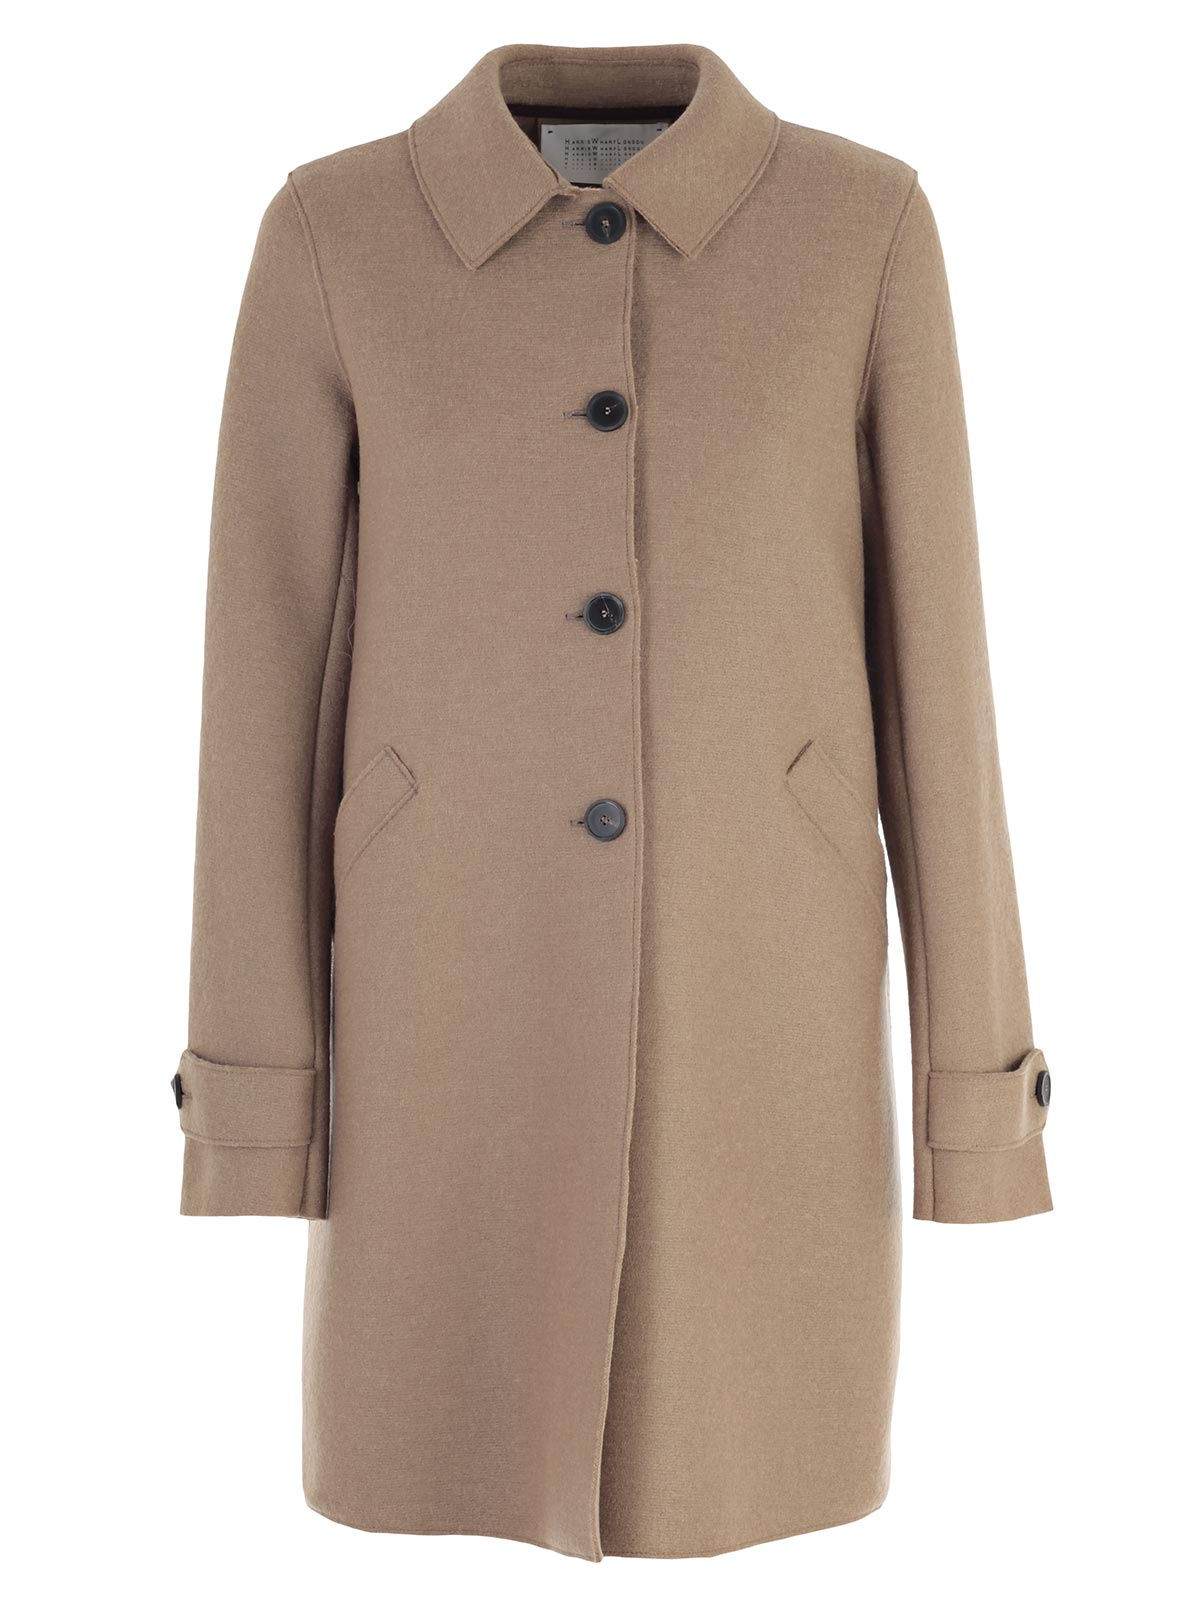 Picture of HARRIS WHARF LONDON COAT LODEN LUNGO INTERNO PILE